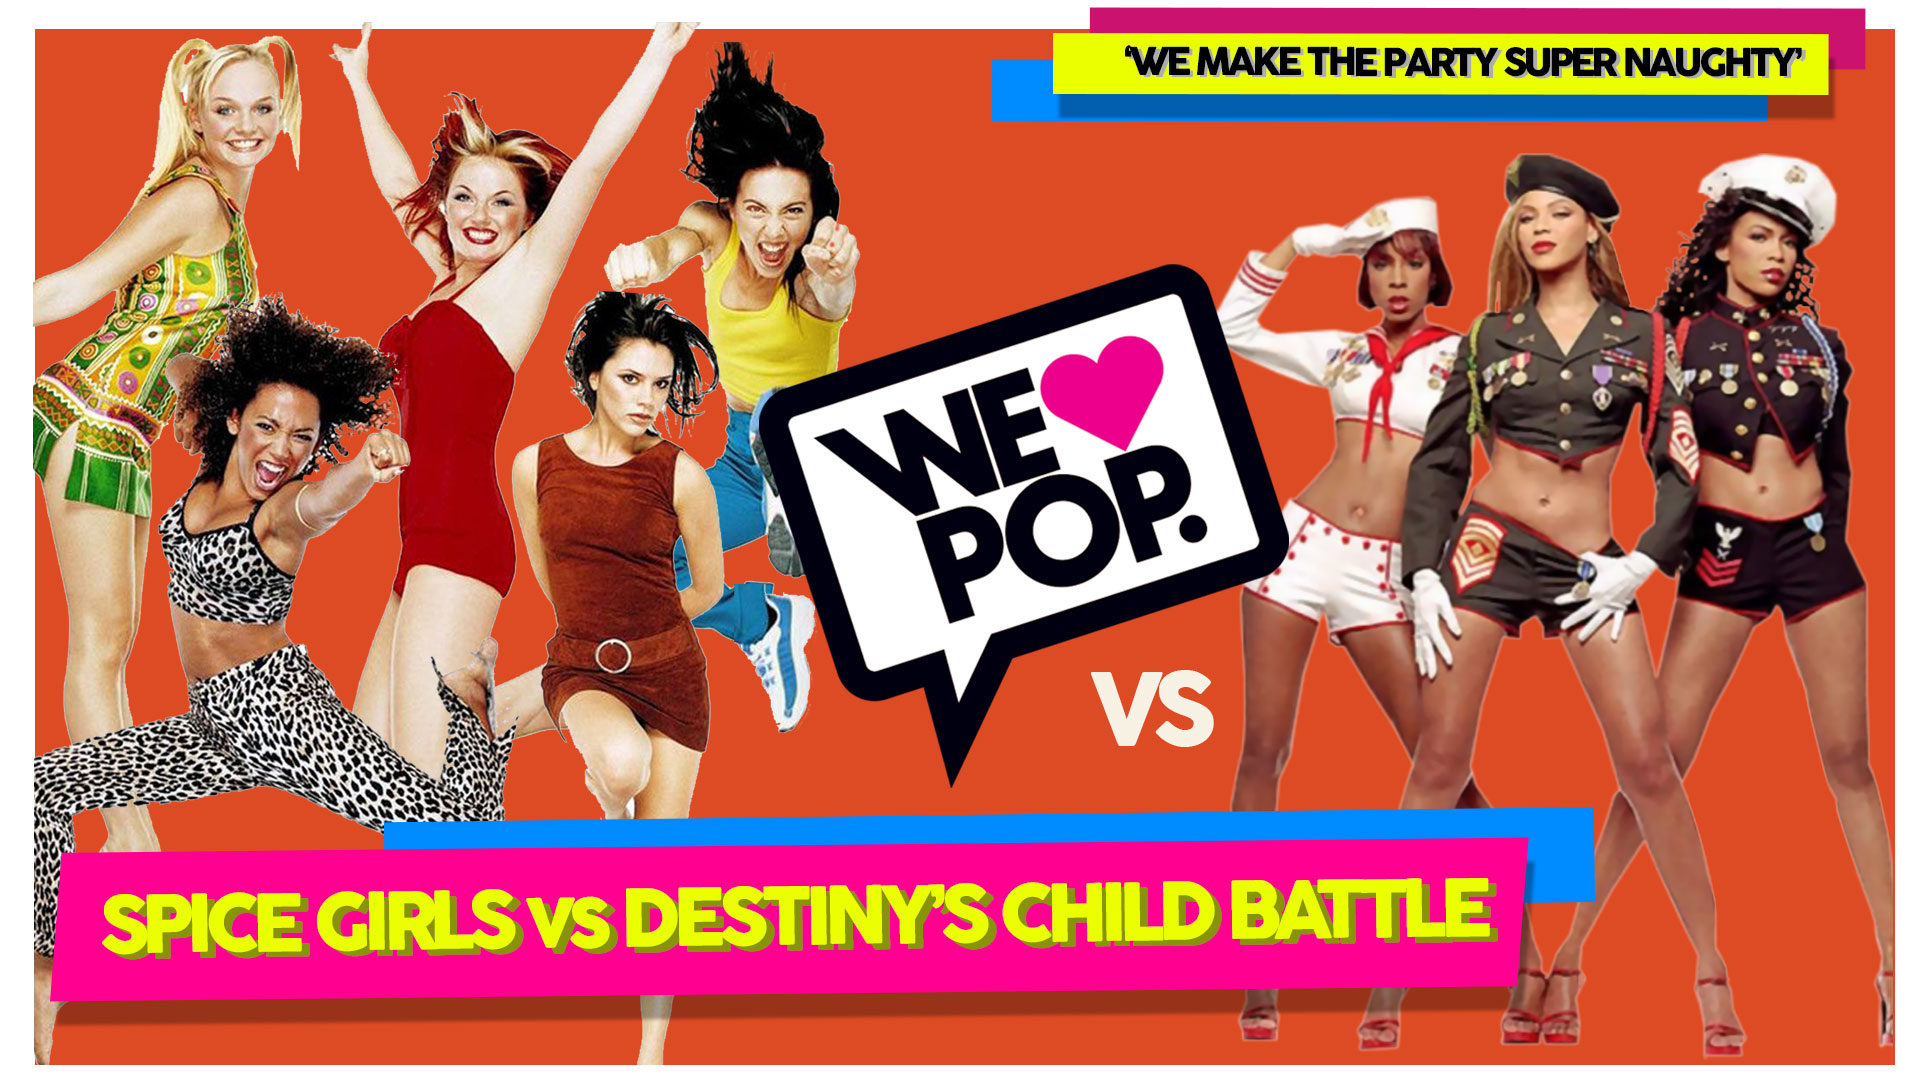 WeLovePop-July-2018-Spice-Girls-vs-Destiny's-Child-FB.jpg